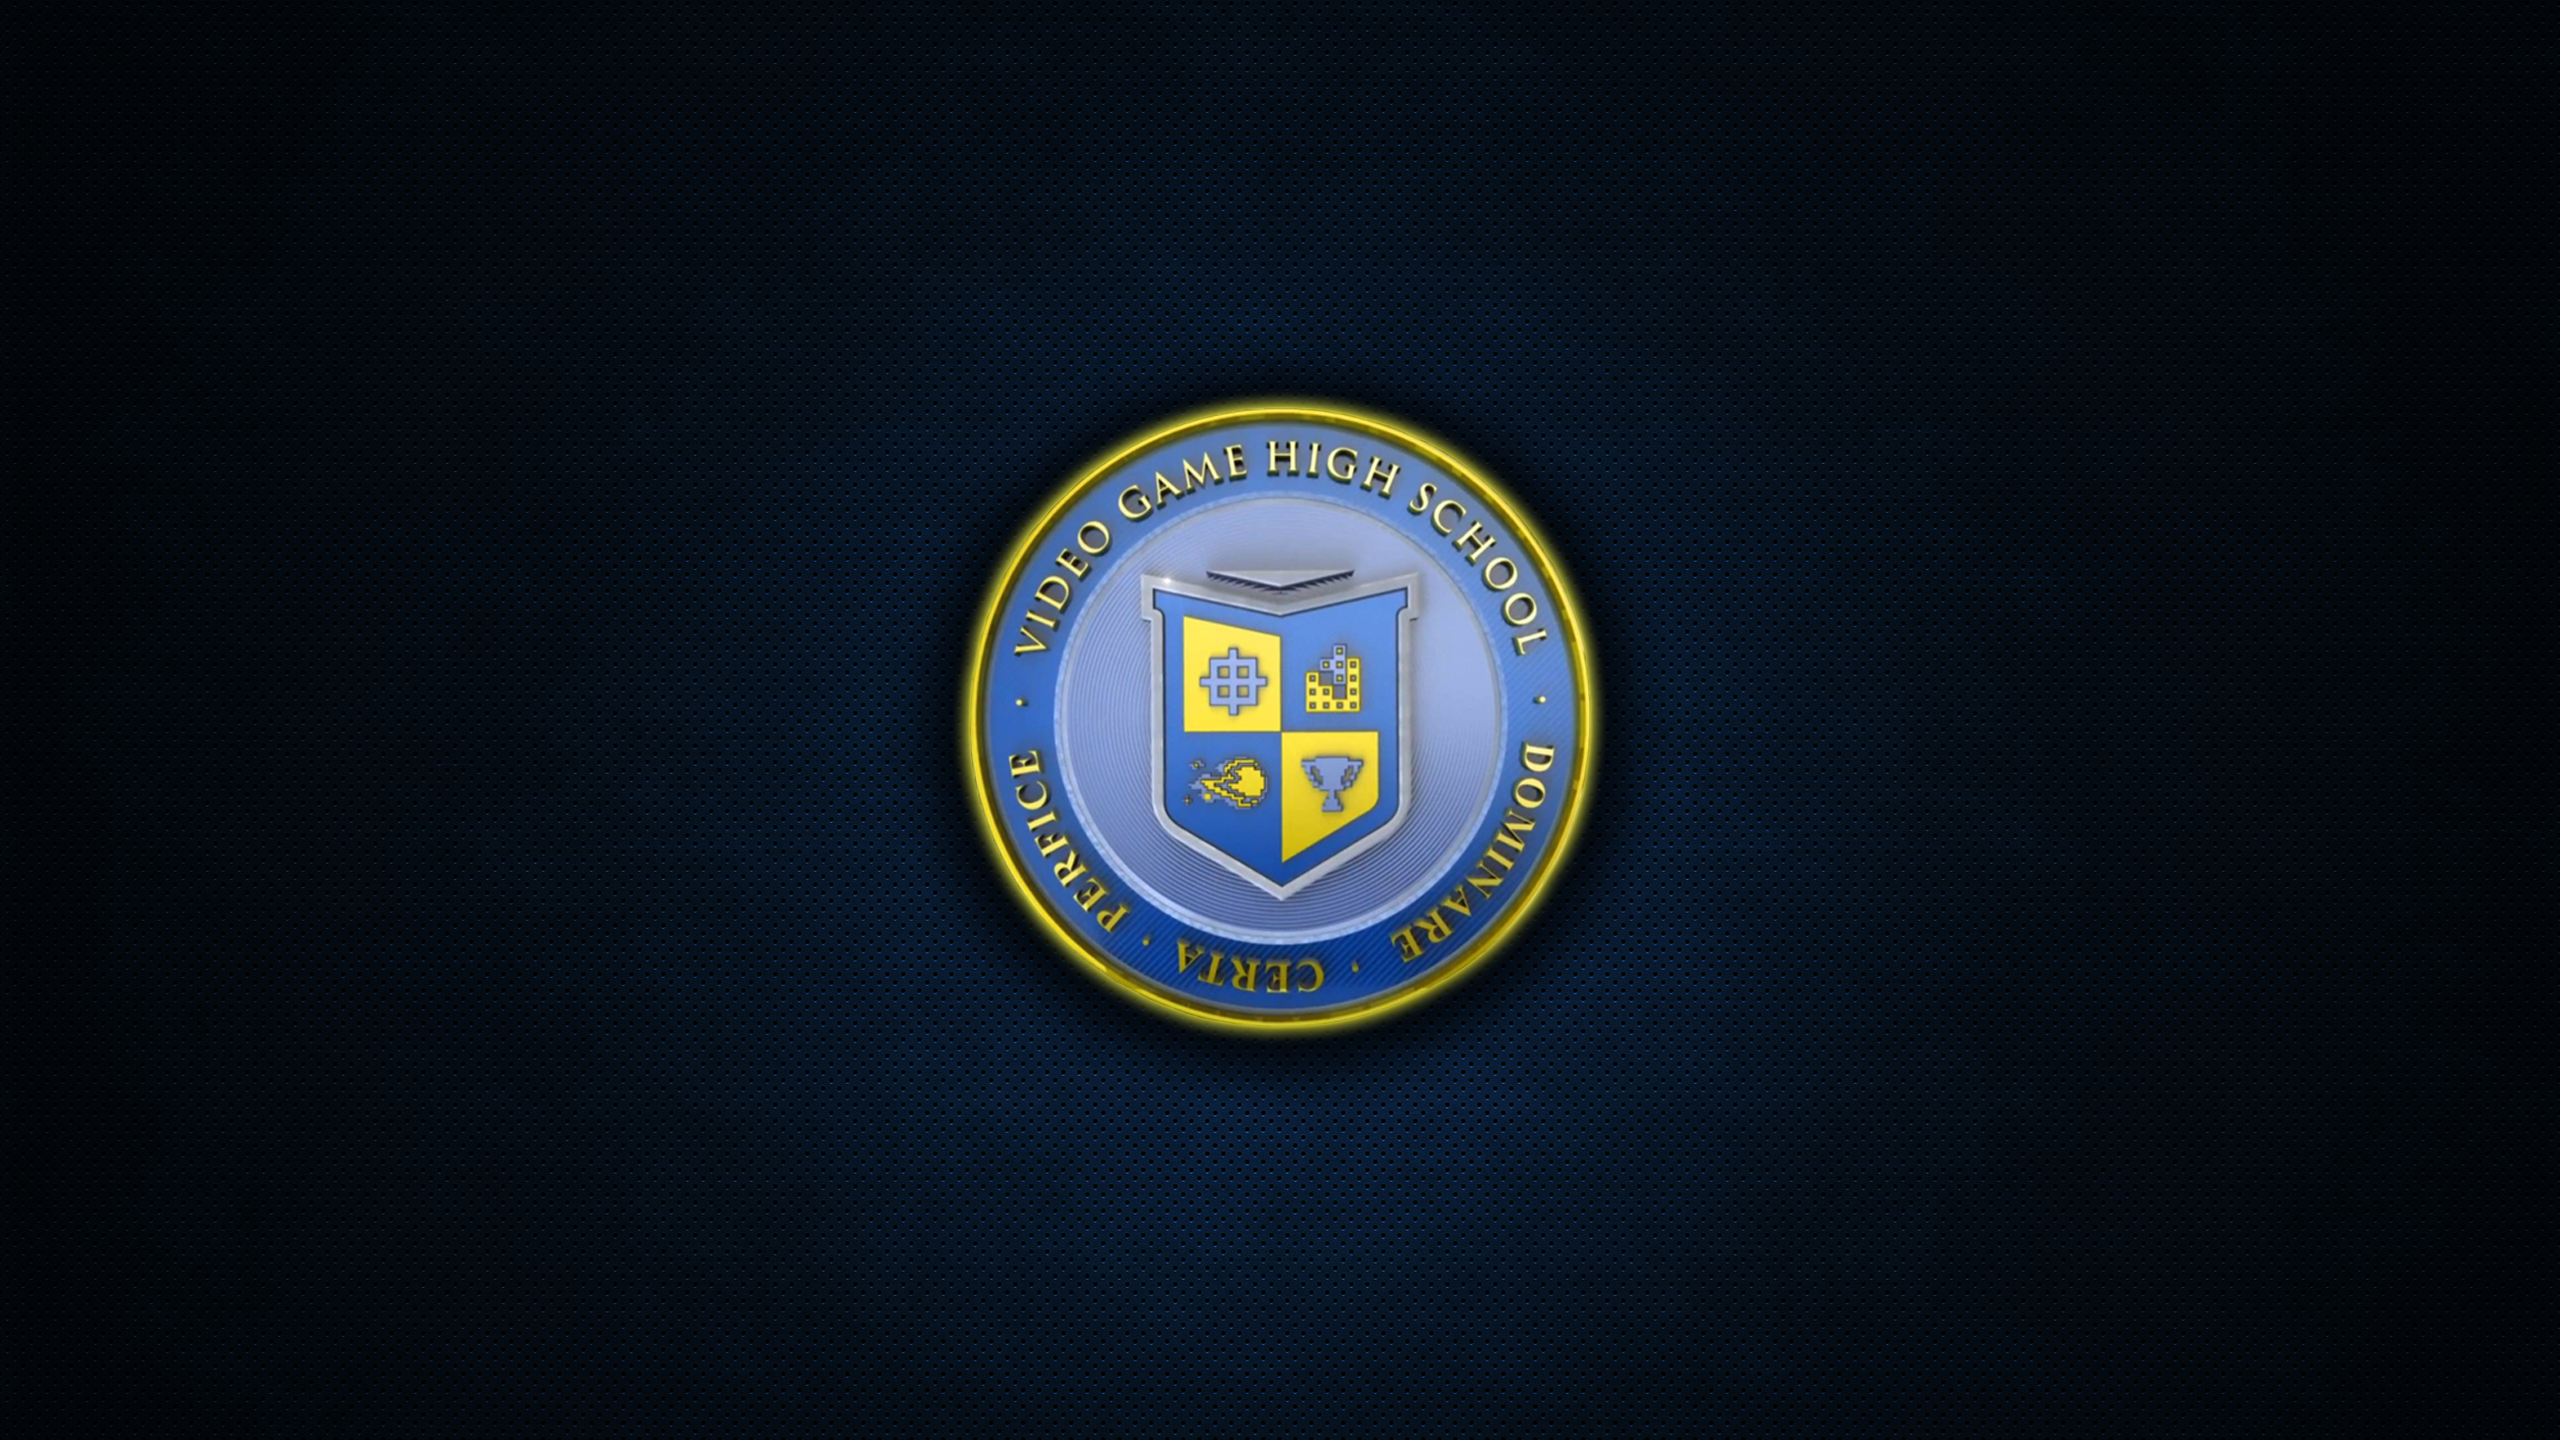 vghs wallpaper - photo #2